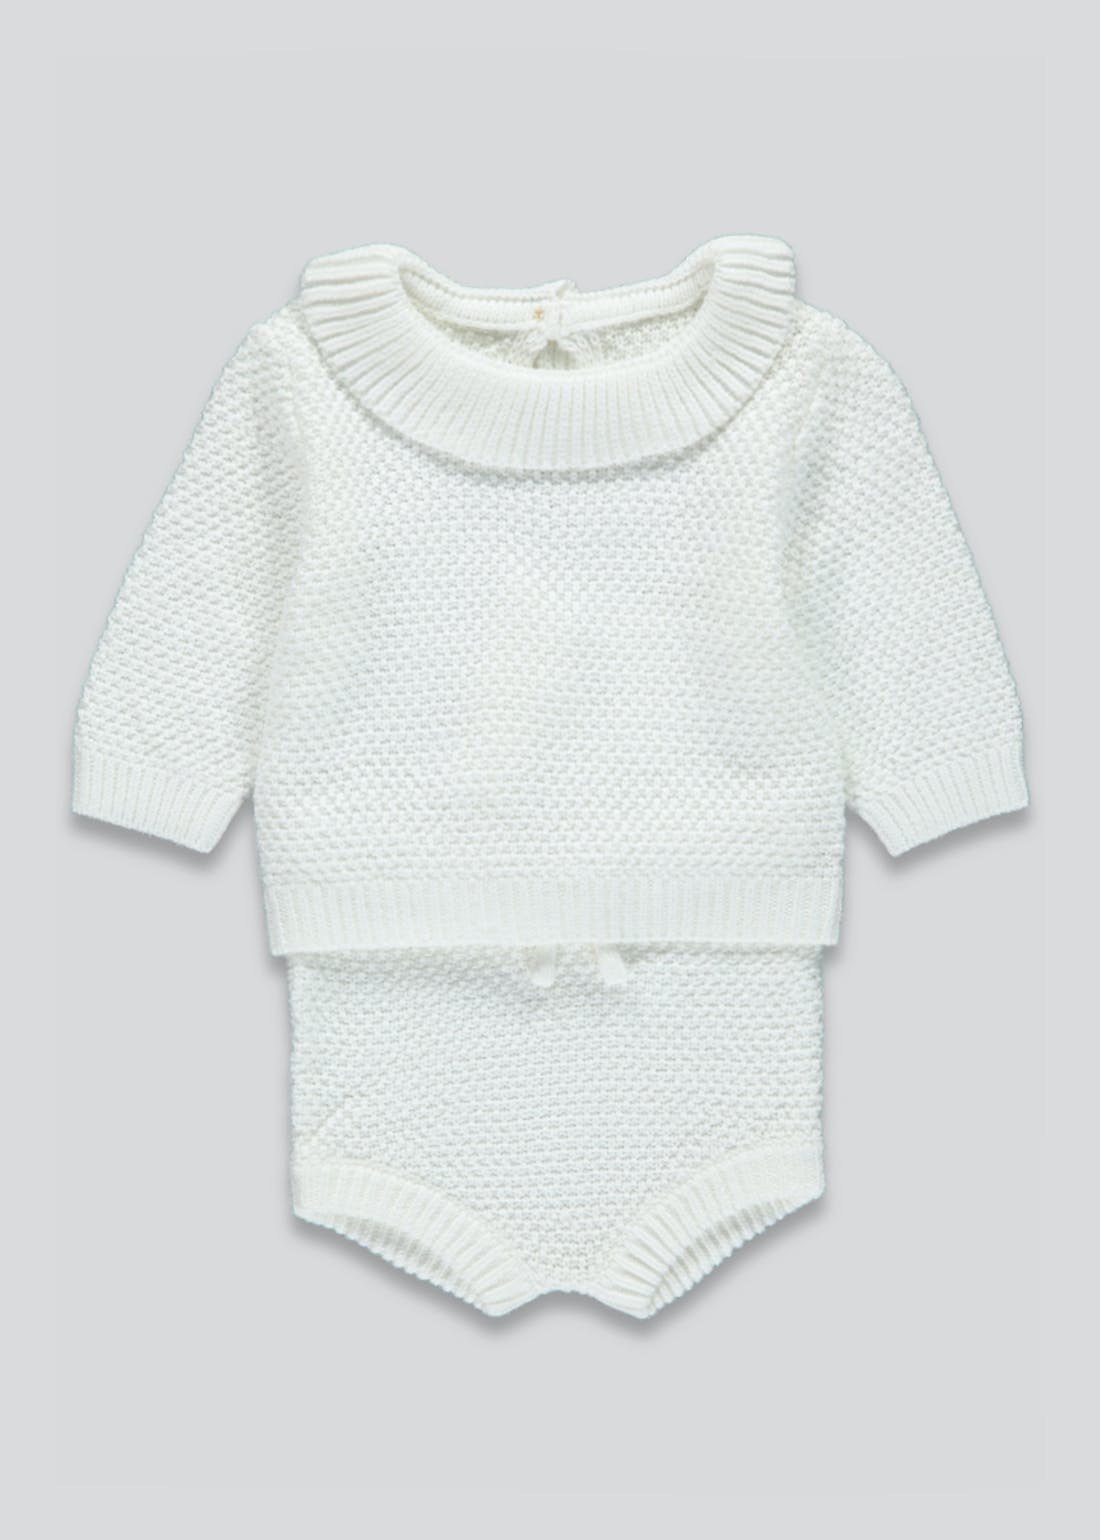 Unisex Knitted Frill Neck Set (Tiny Baby-23mths)